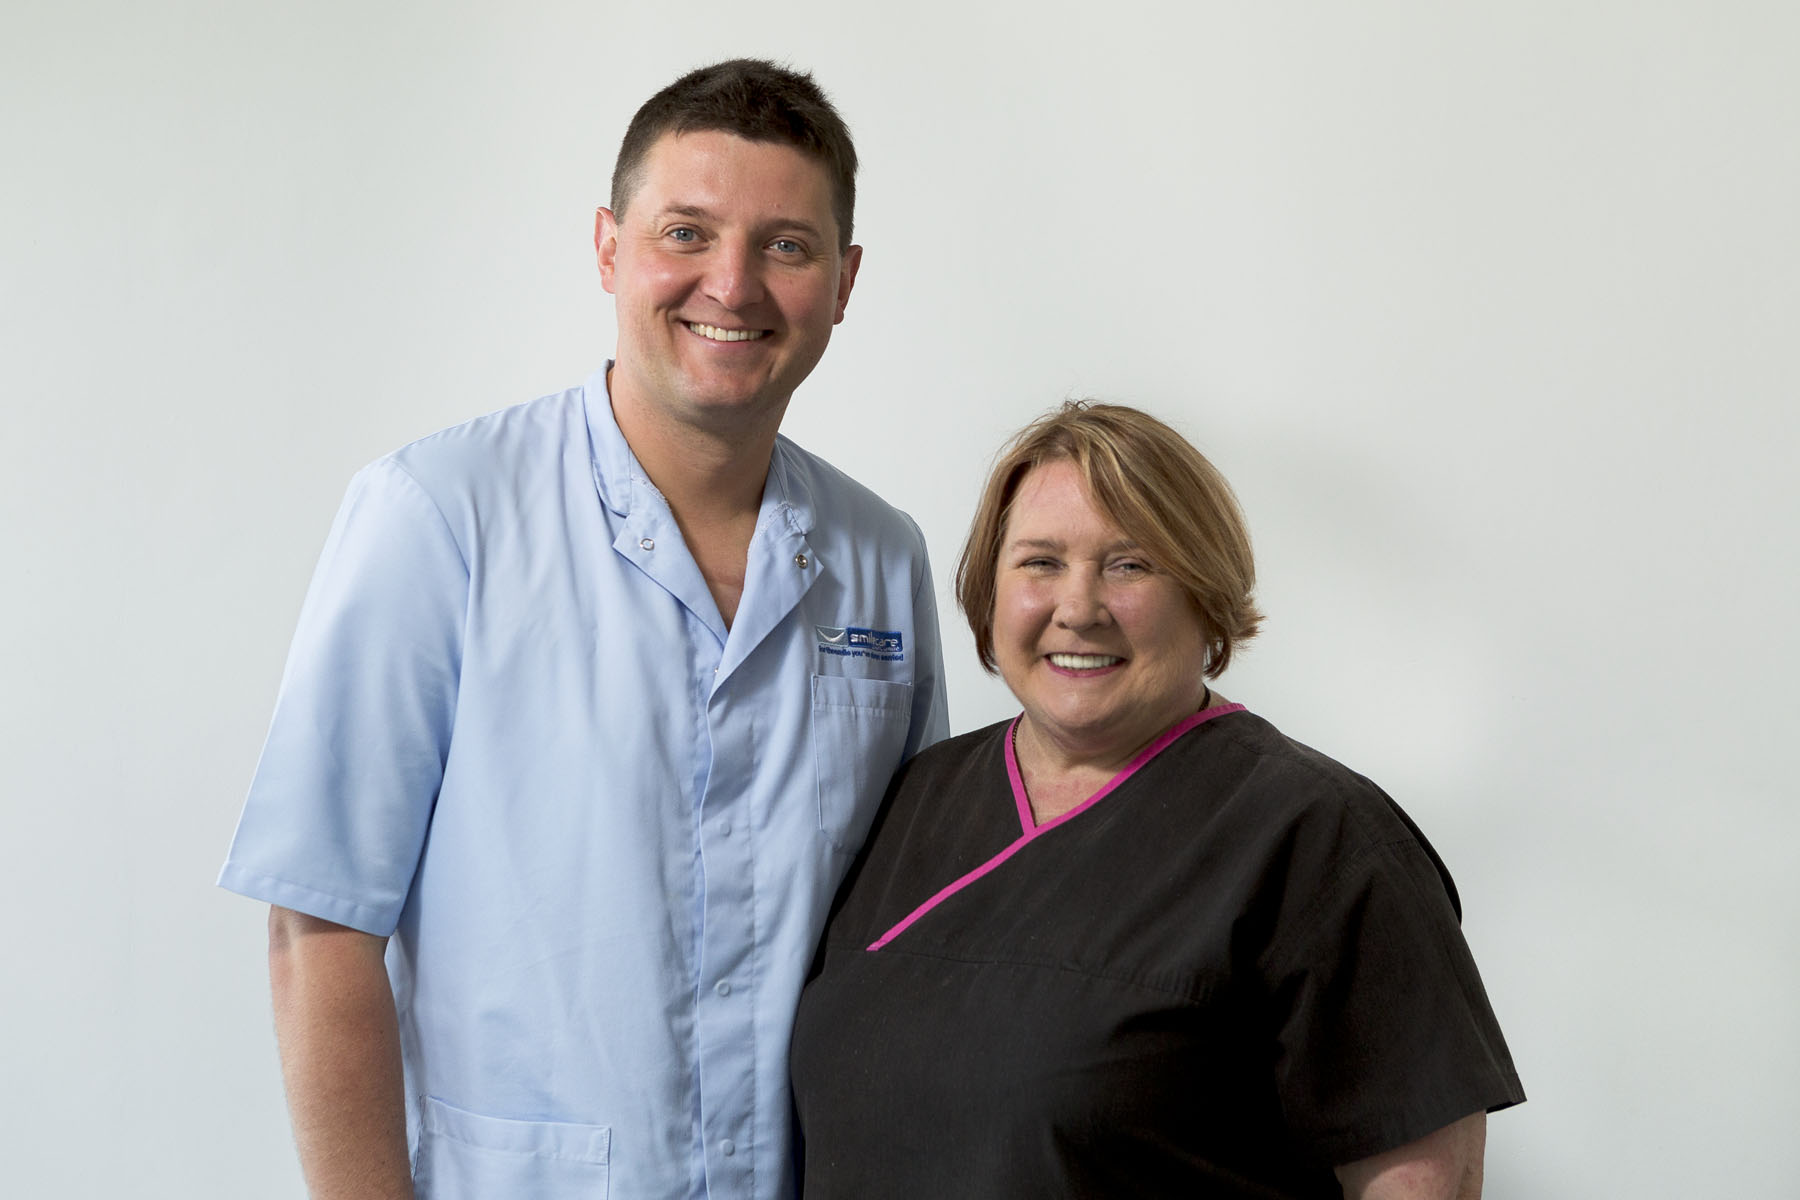 Dentist providing general and cosmetic dentistry services in Plymouth.